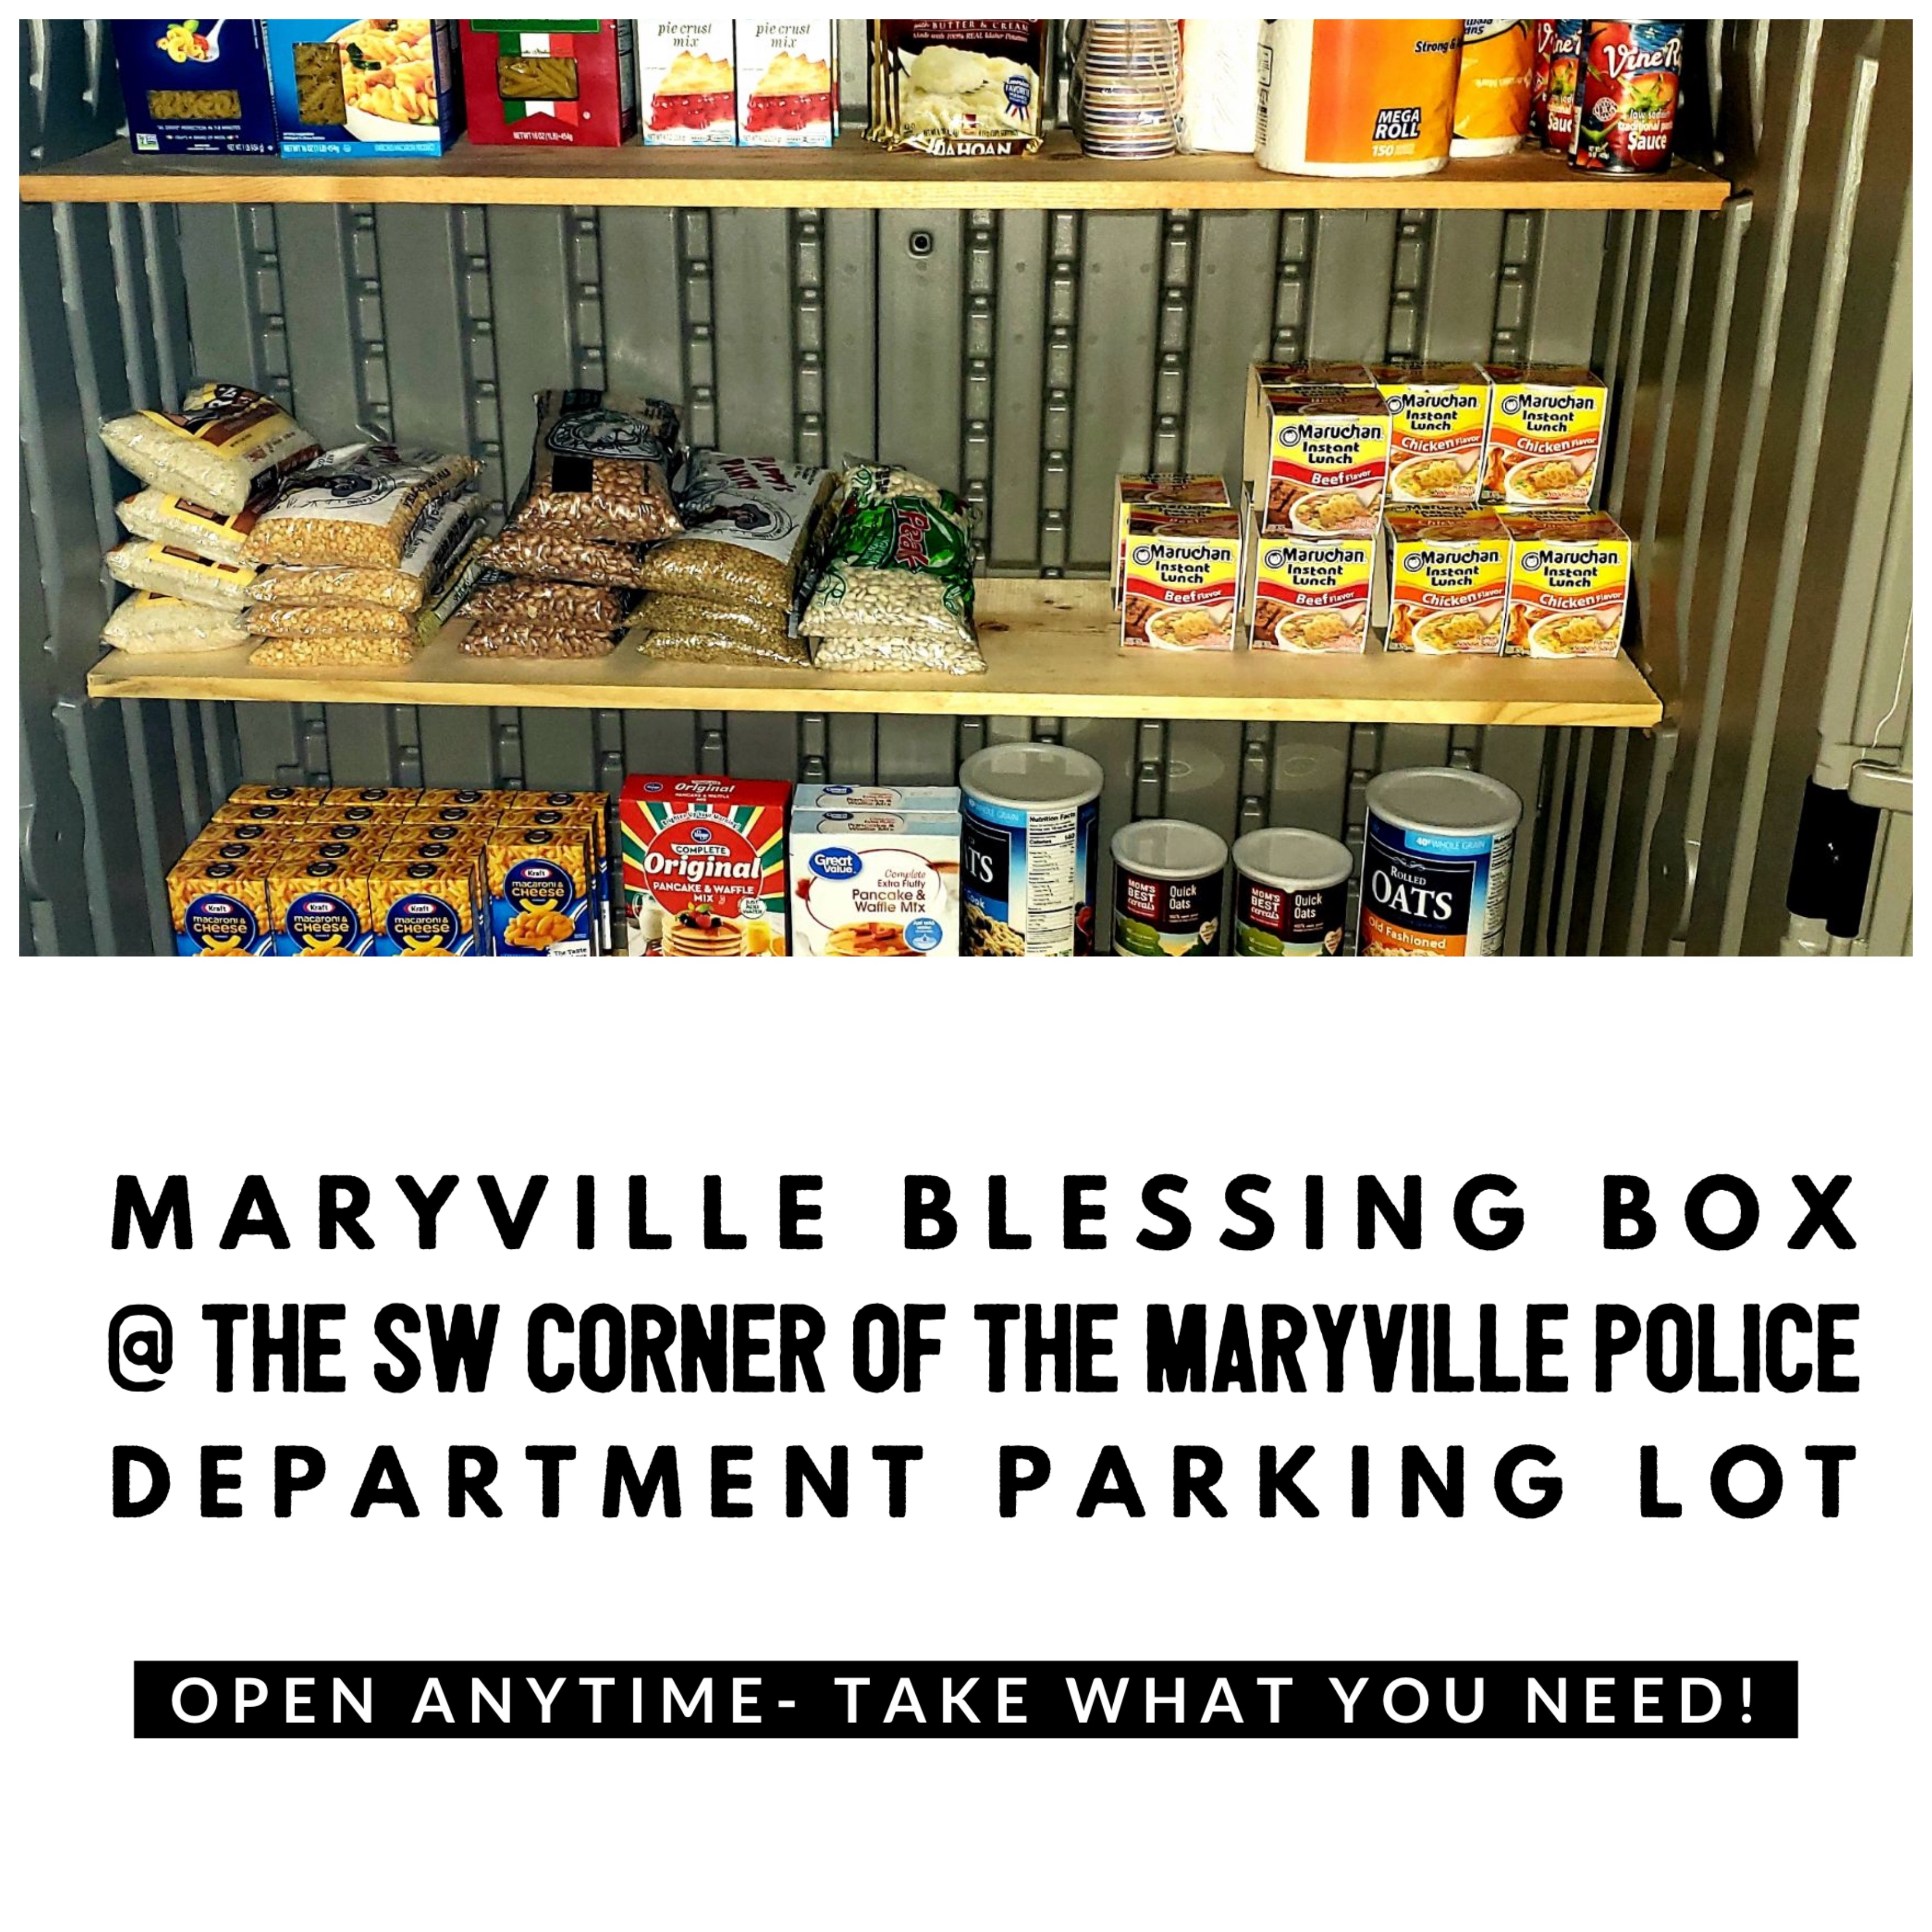 Maryville Blessing Box Photo 1